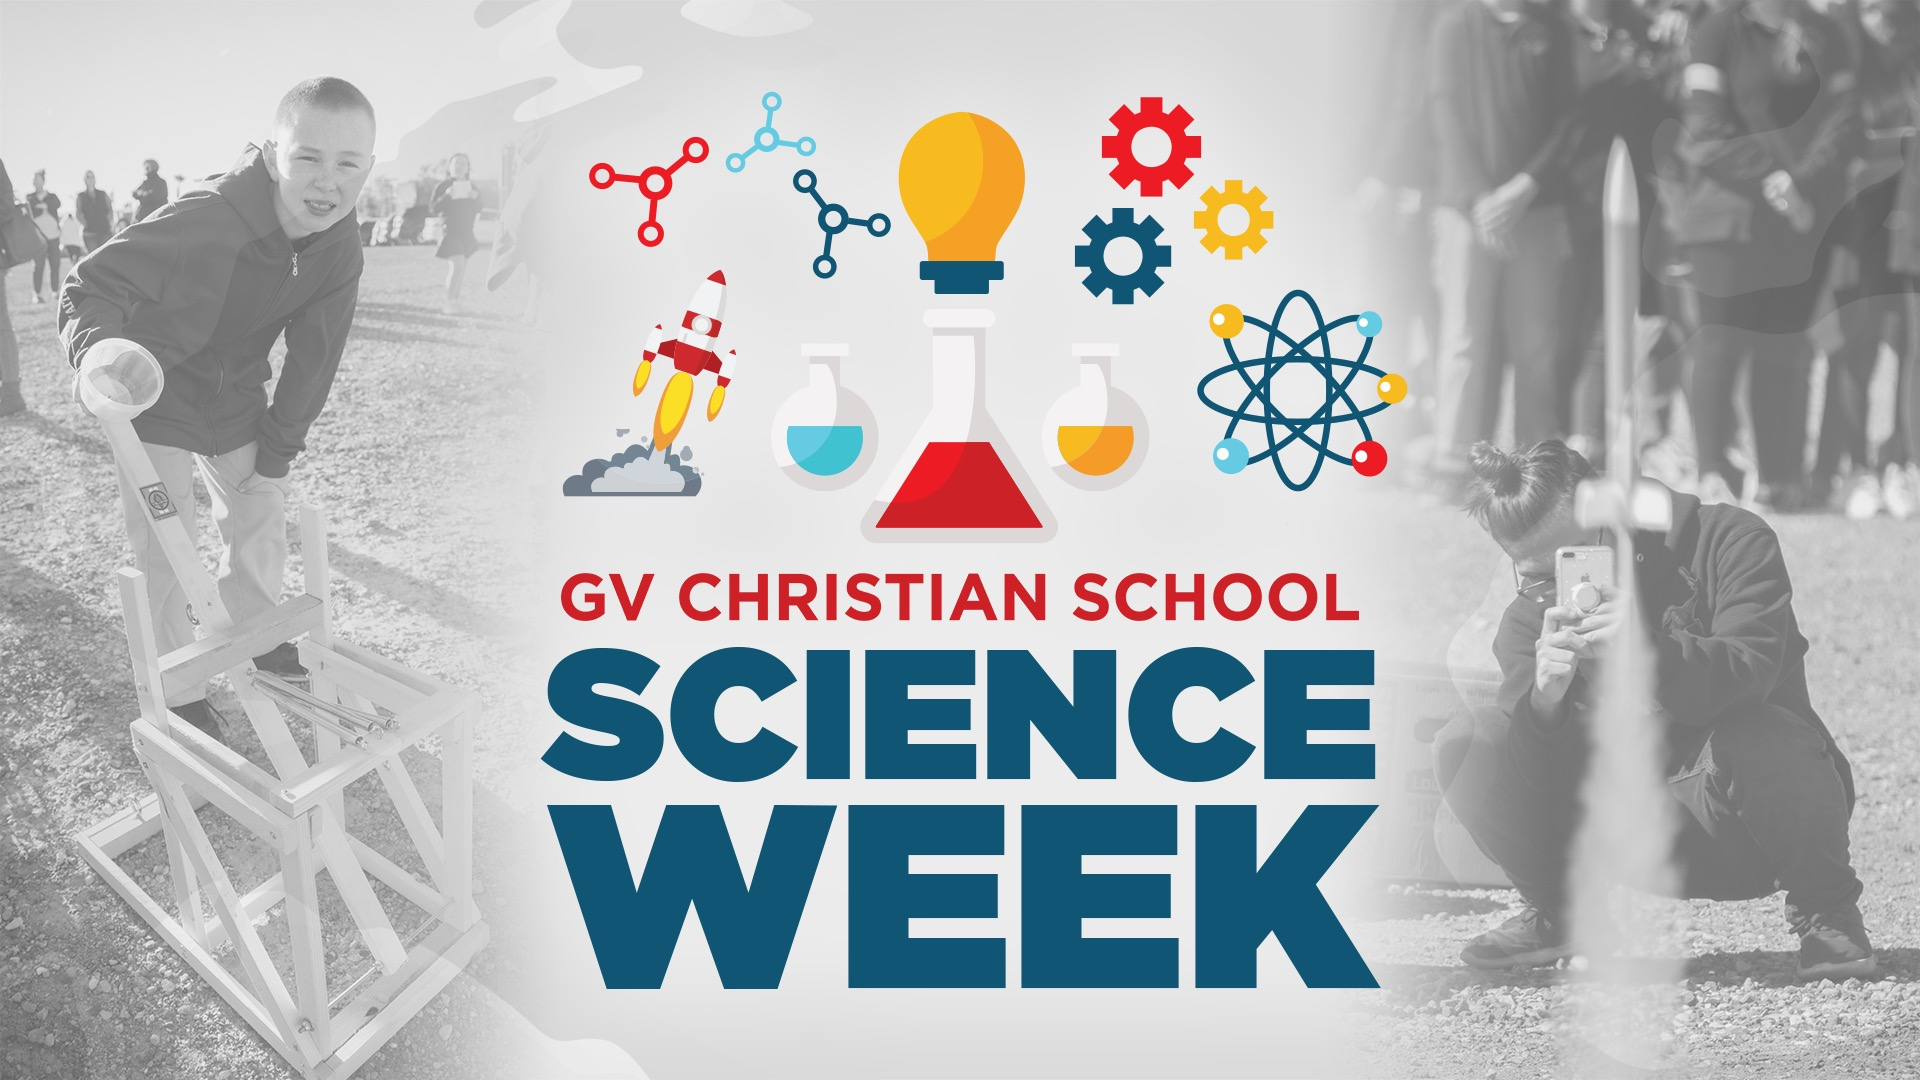 GVCS Science Week